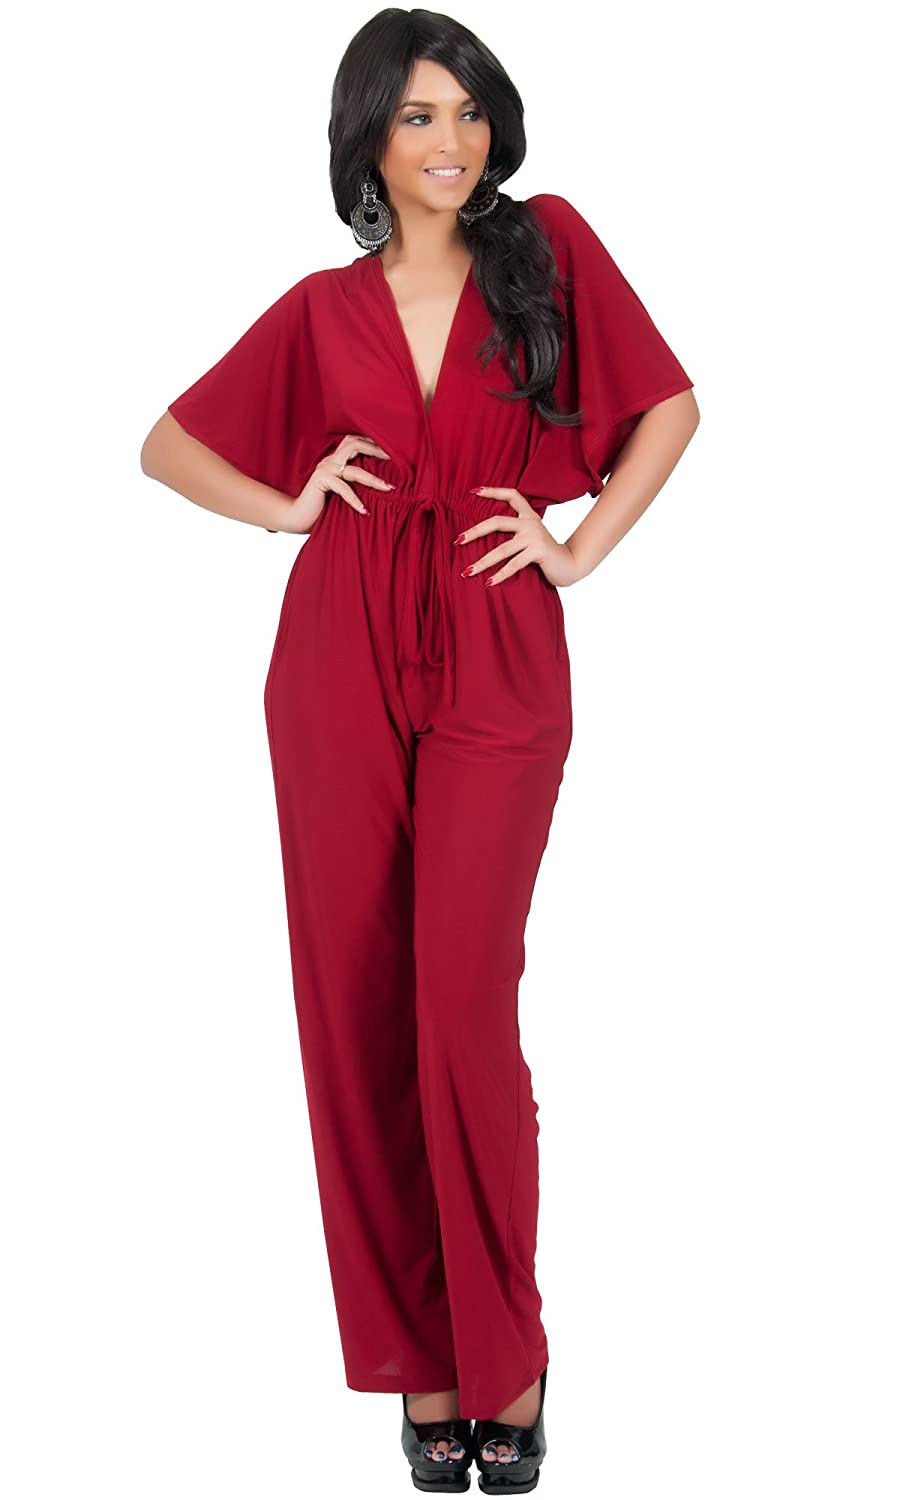 152754b8e52 KOH KOH Womens Short Kimono Sleeve One Piece Jumpsuit Cocktail ...